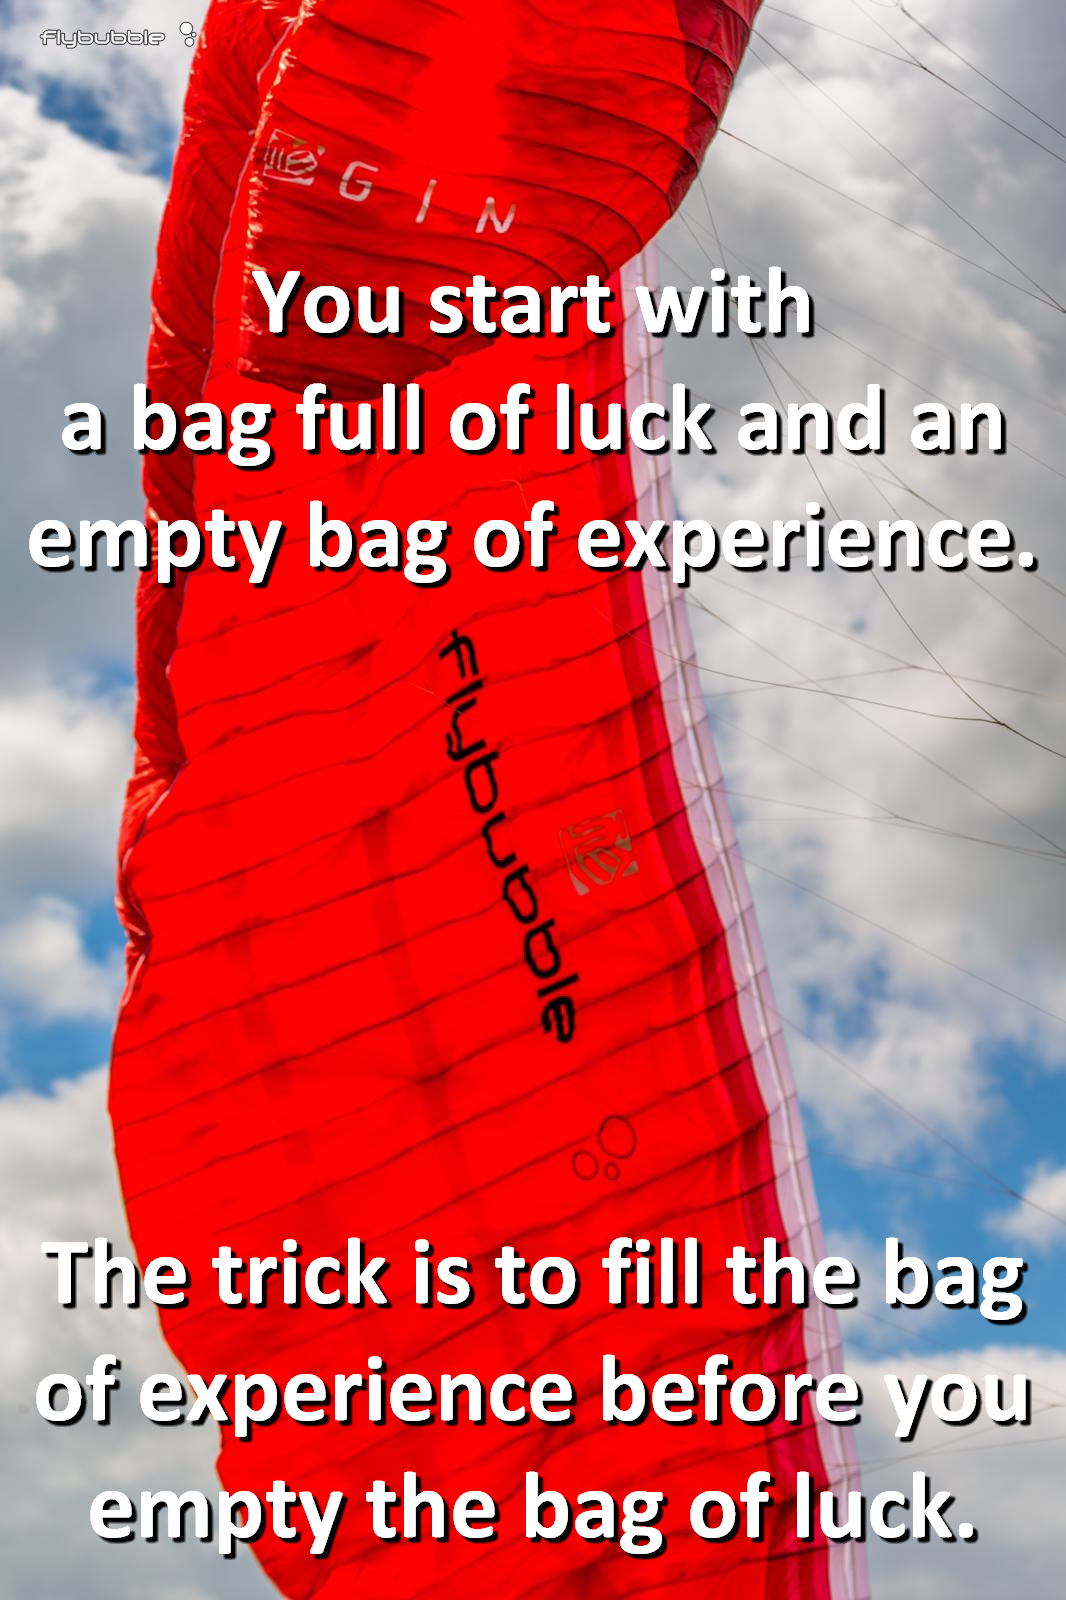 You start with a bag full of luck and an empty bag of experience. The trick is to fill the bag of experience before you empty the bag of luck.